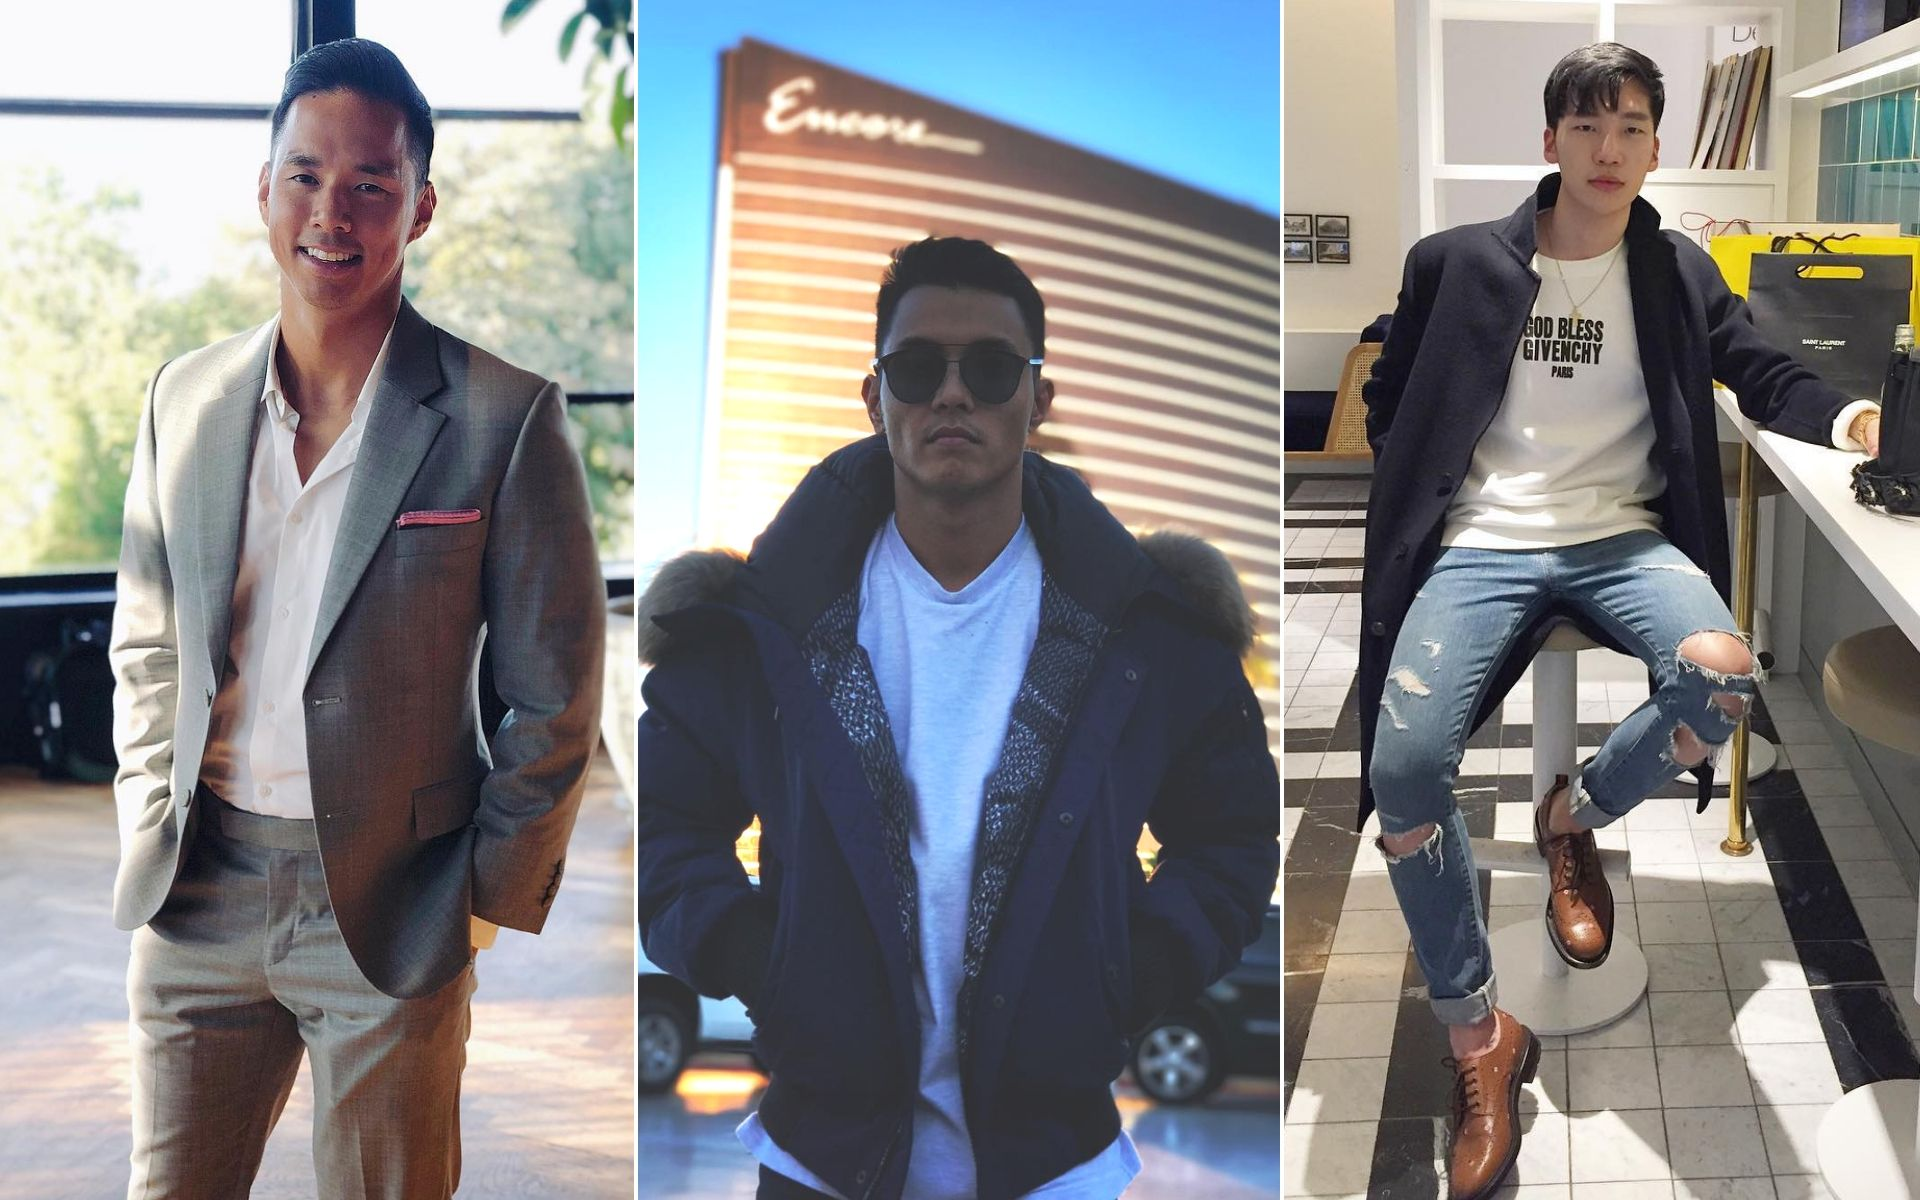 Stylish Malaysian Men On Instagram The World Can't Get Enough Of